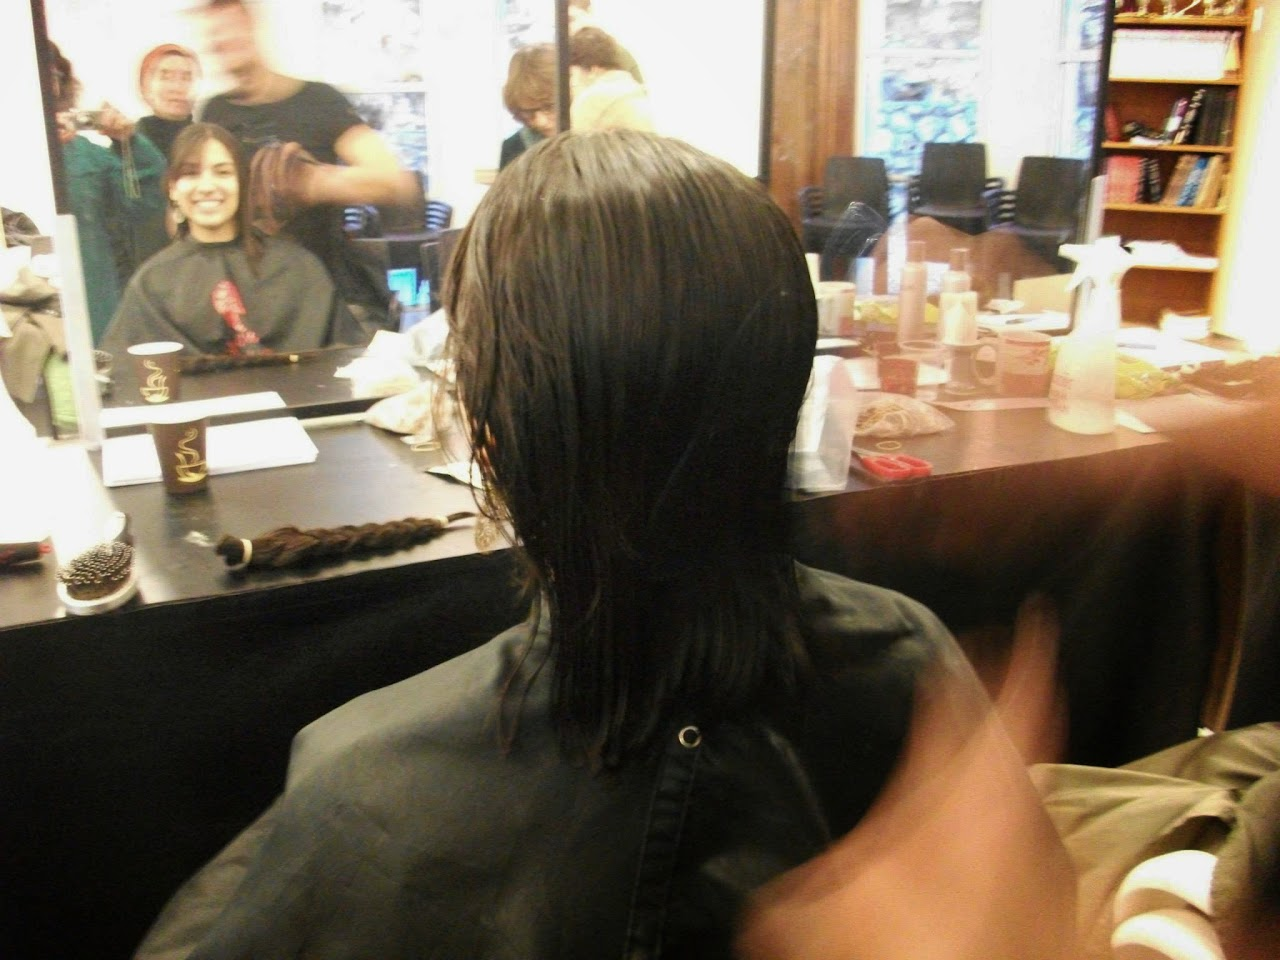 Donating hair for cancer patients 2014  - 1941365_539677932815171_936682636_o.jpg